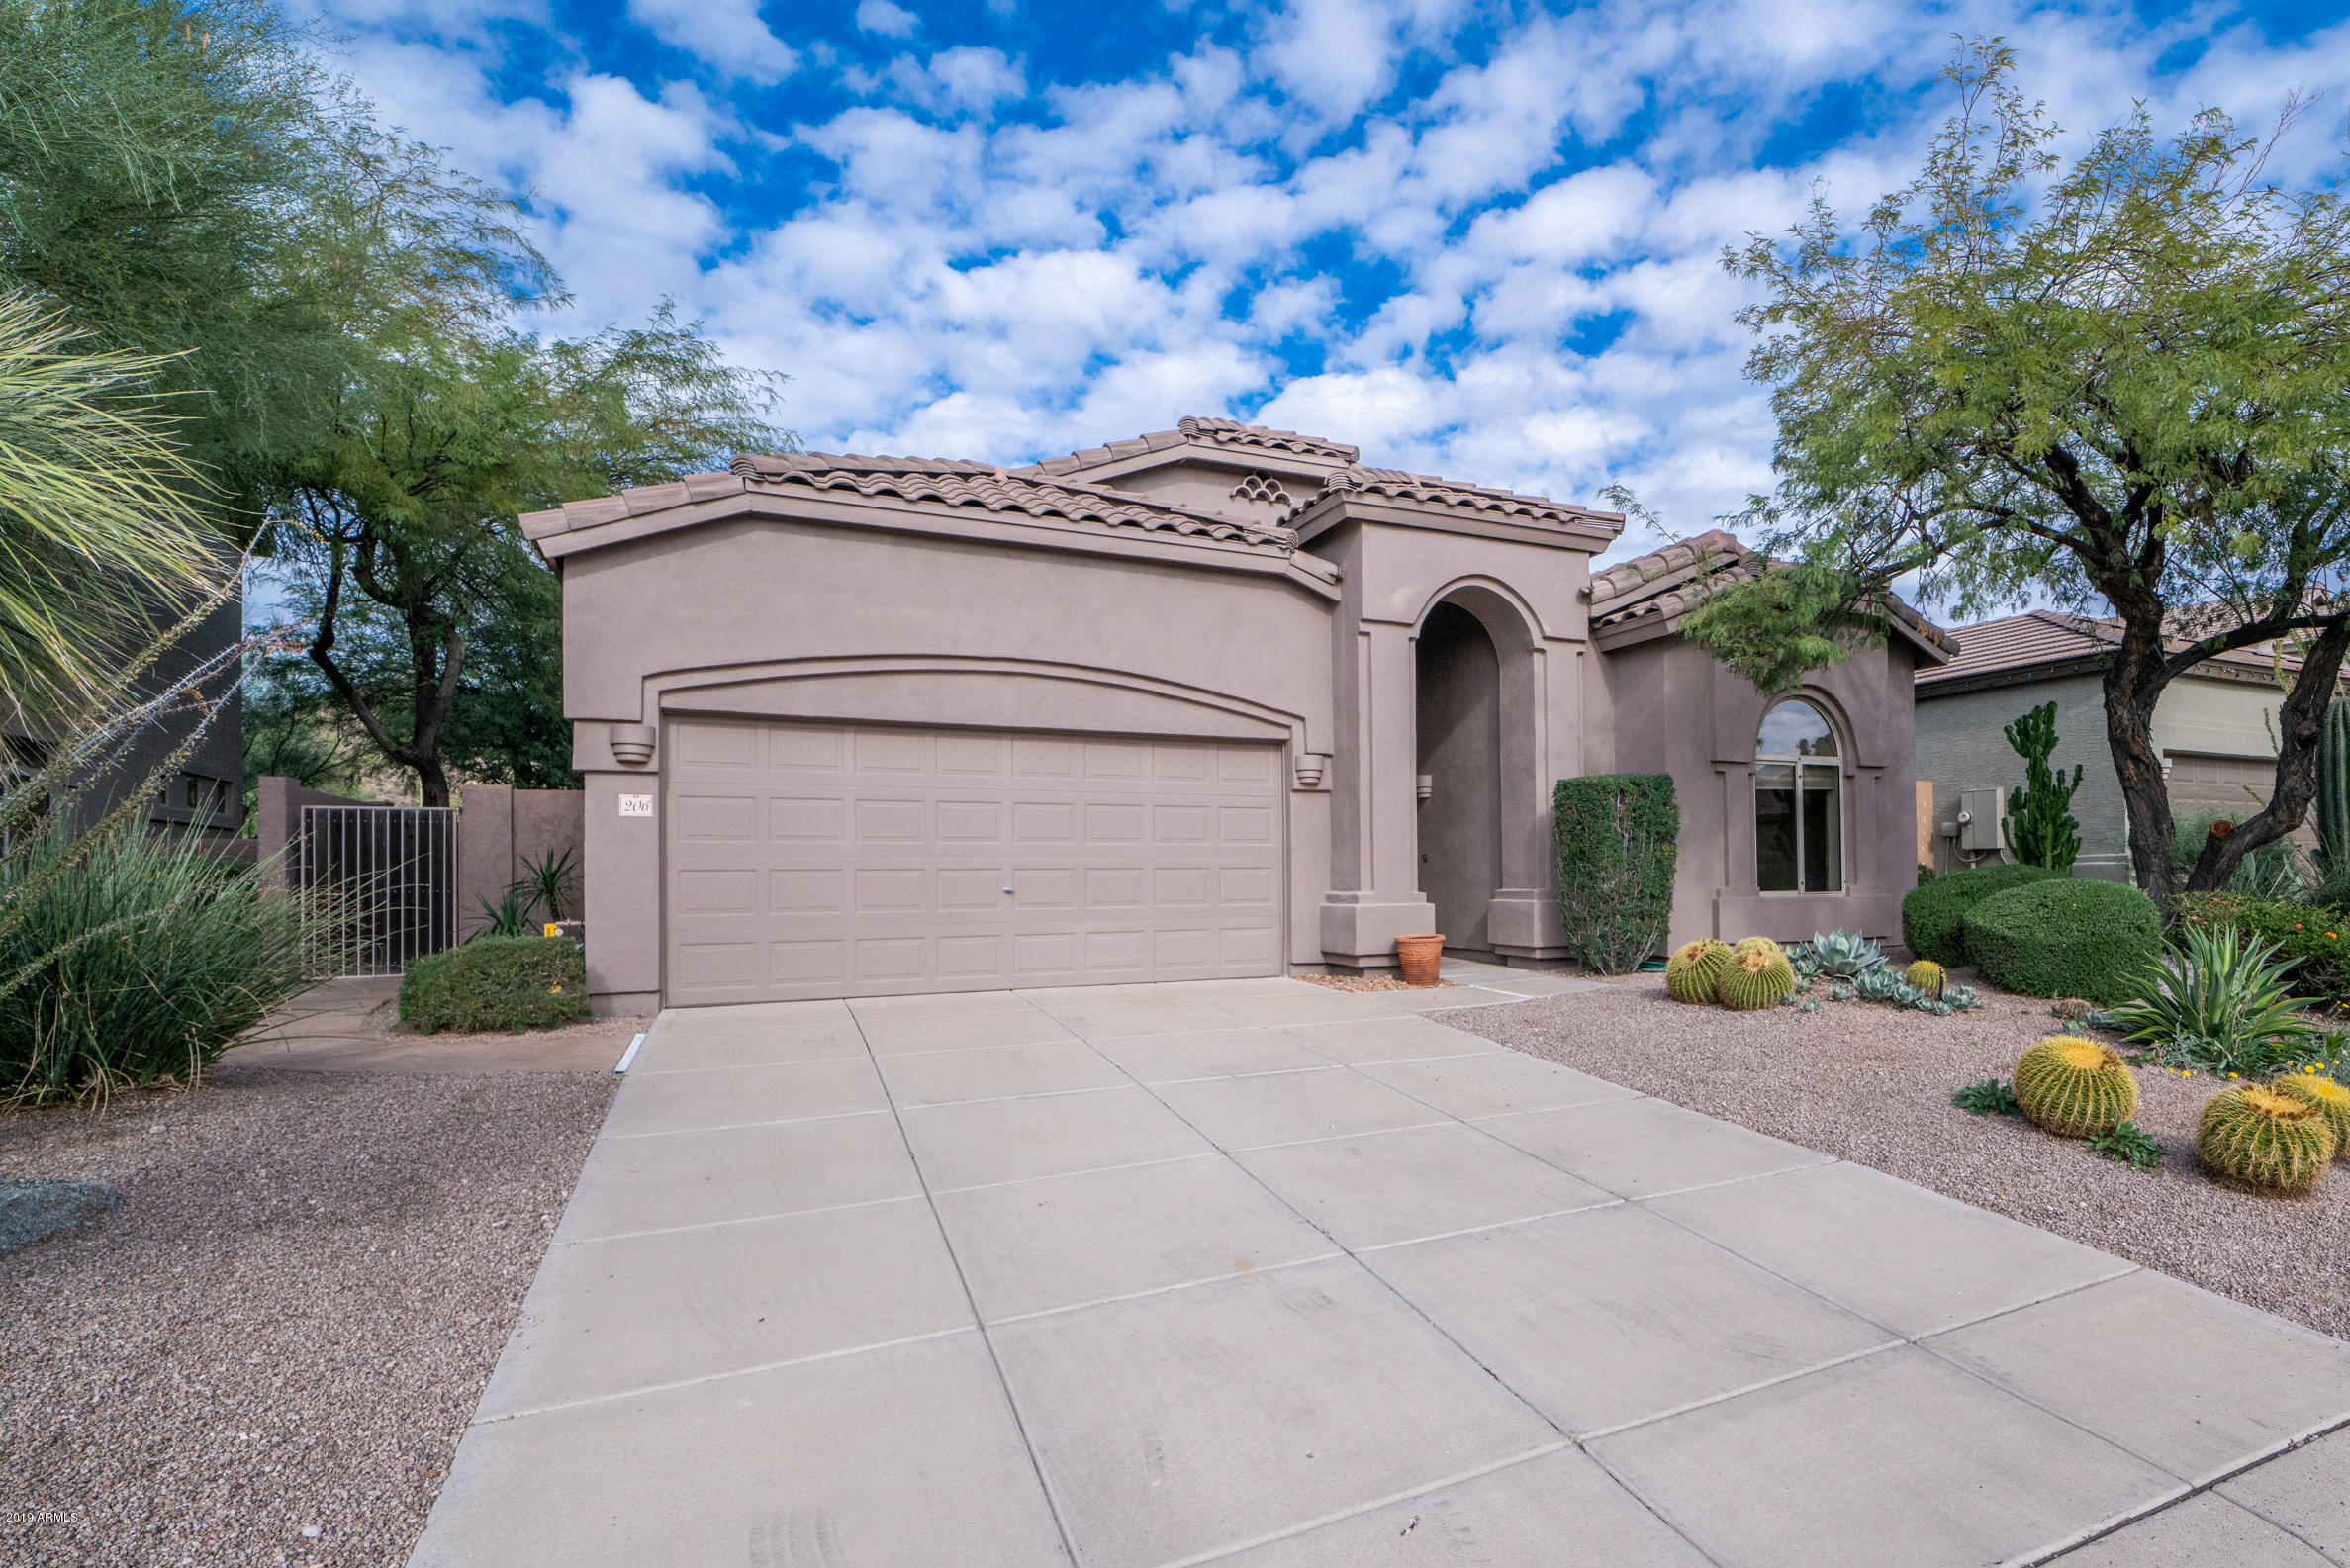 Photo of 3055 N RED MOUNTAIN -- #206, Mesa, AZ 85207